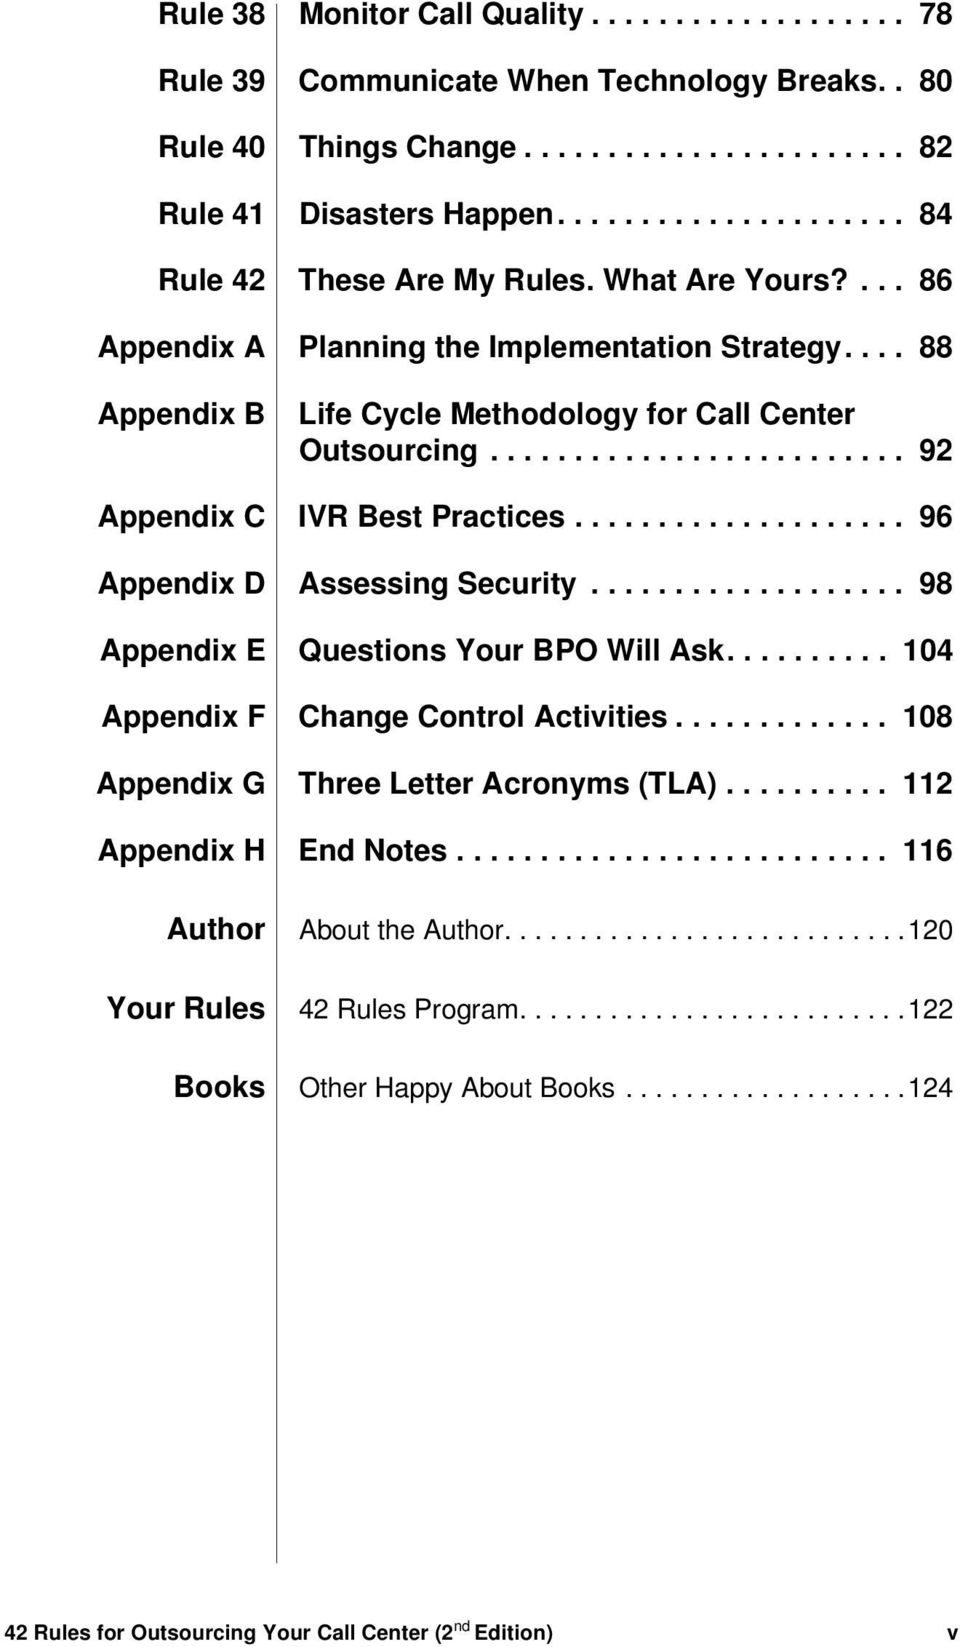 ........................ 92 Appendix C IVR Best Practices.................... 96 Appendix D Assessing Security................... 98 Appendix E Questions Your BPO Will Ask.